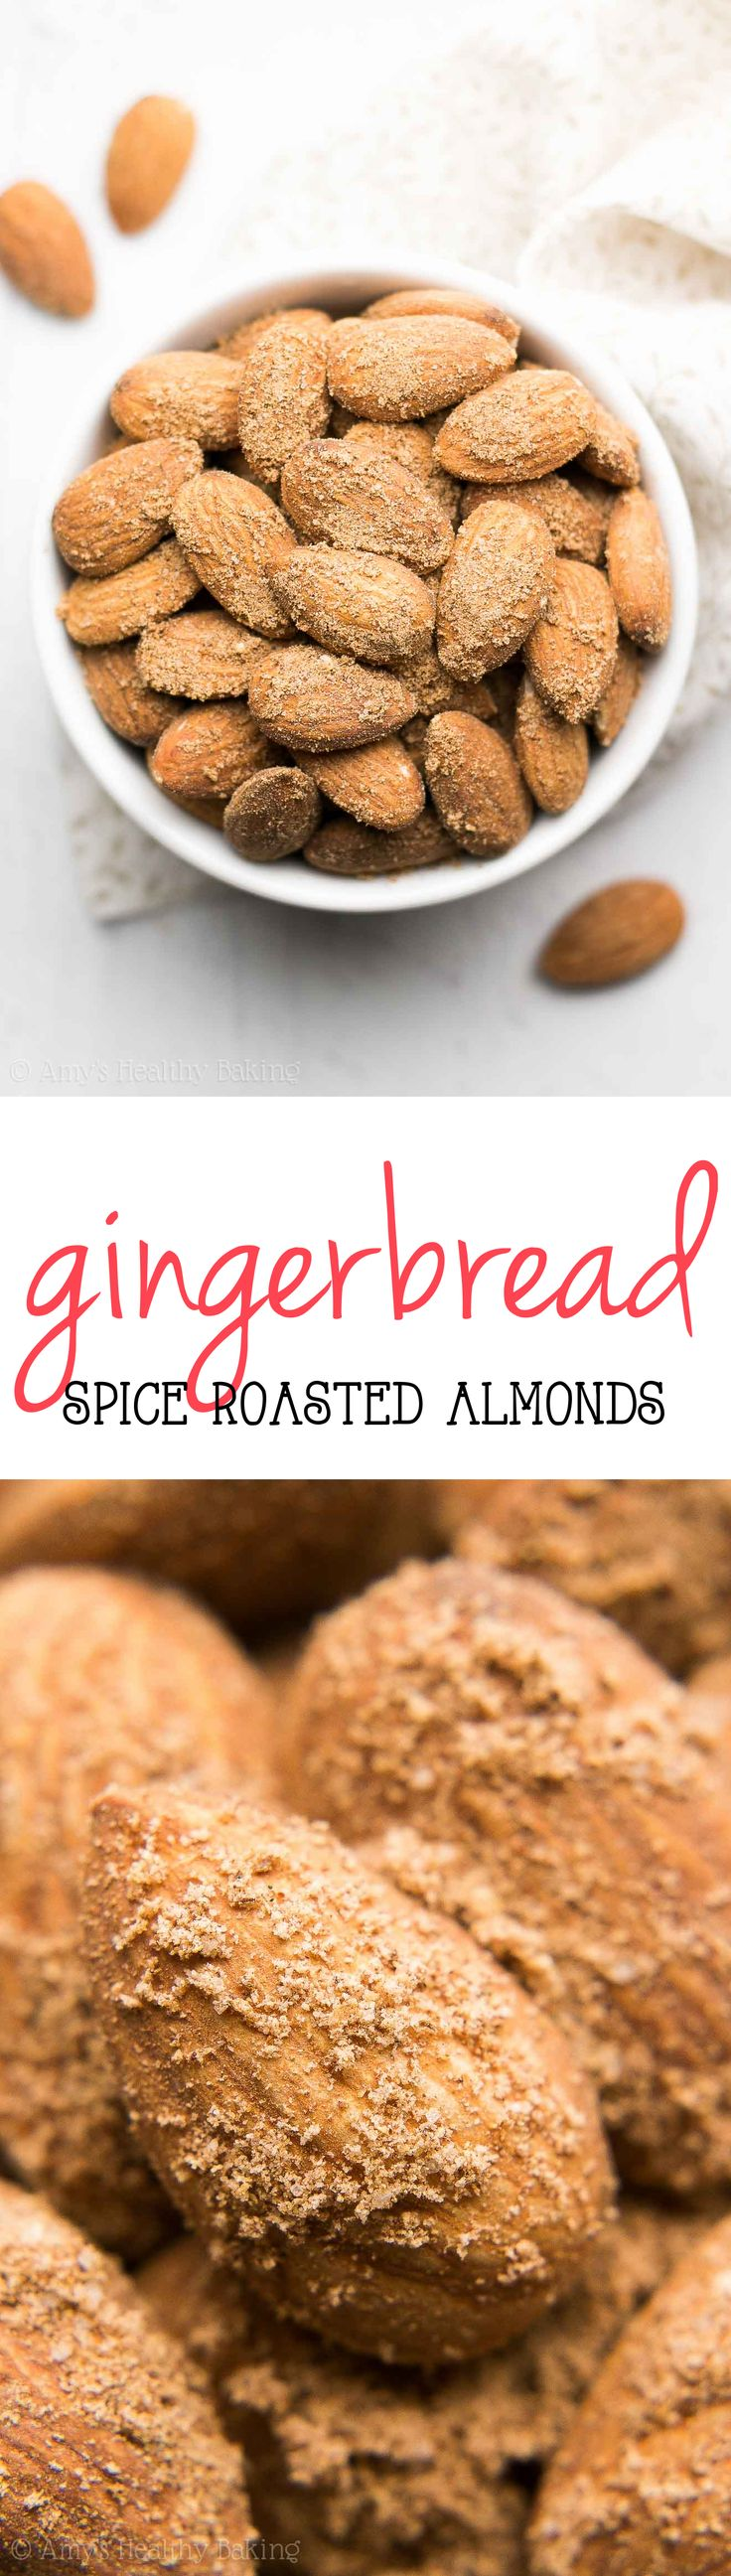 Healthy Gingerbread Spice Roasted Almonds -- just 10 minutes to make this easy snack! SO much better than those store-bought snack packs!